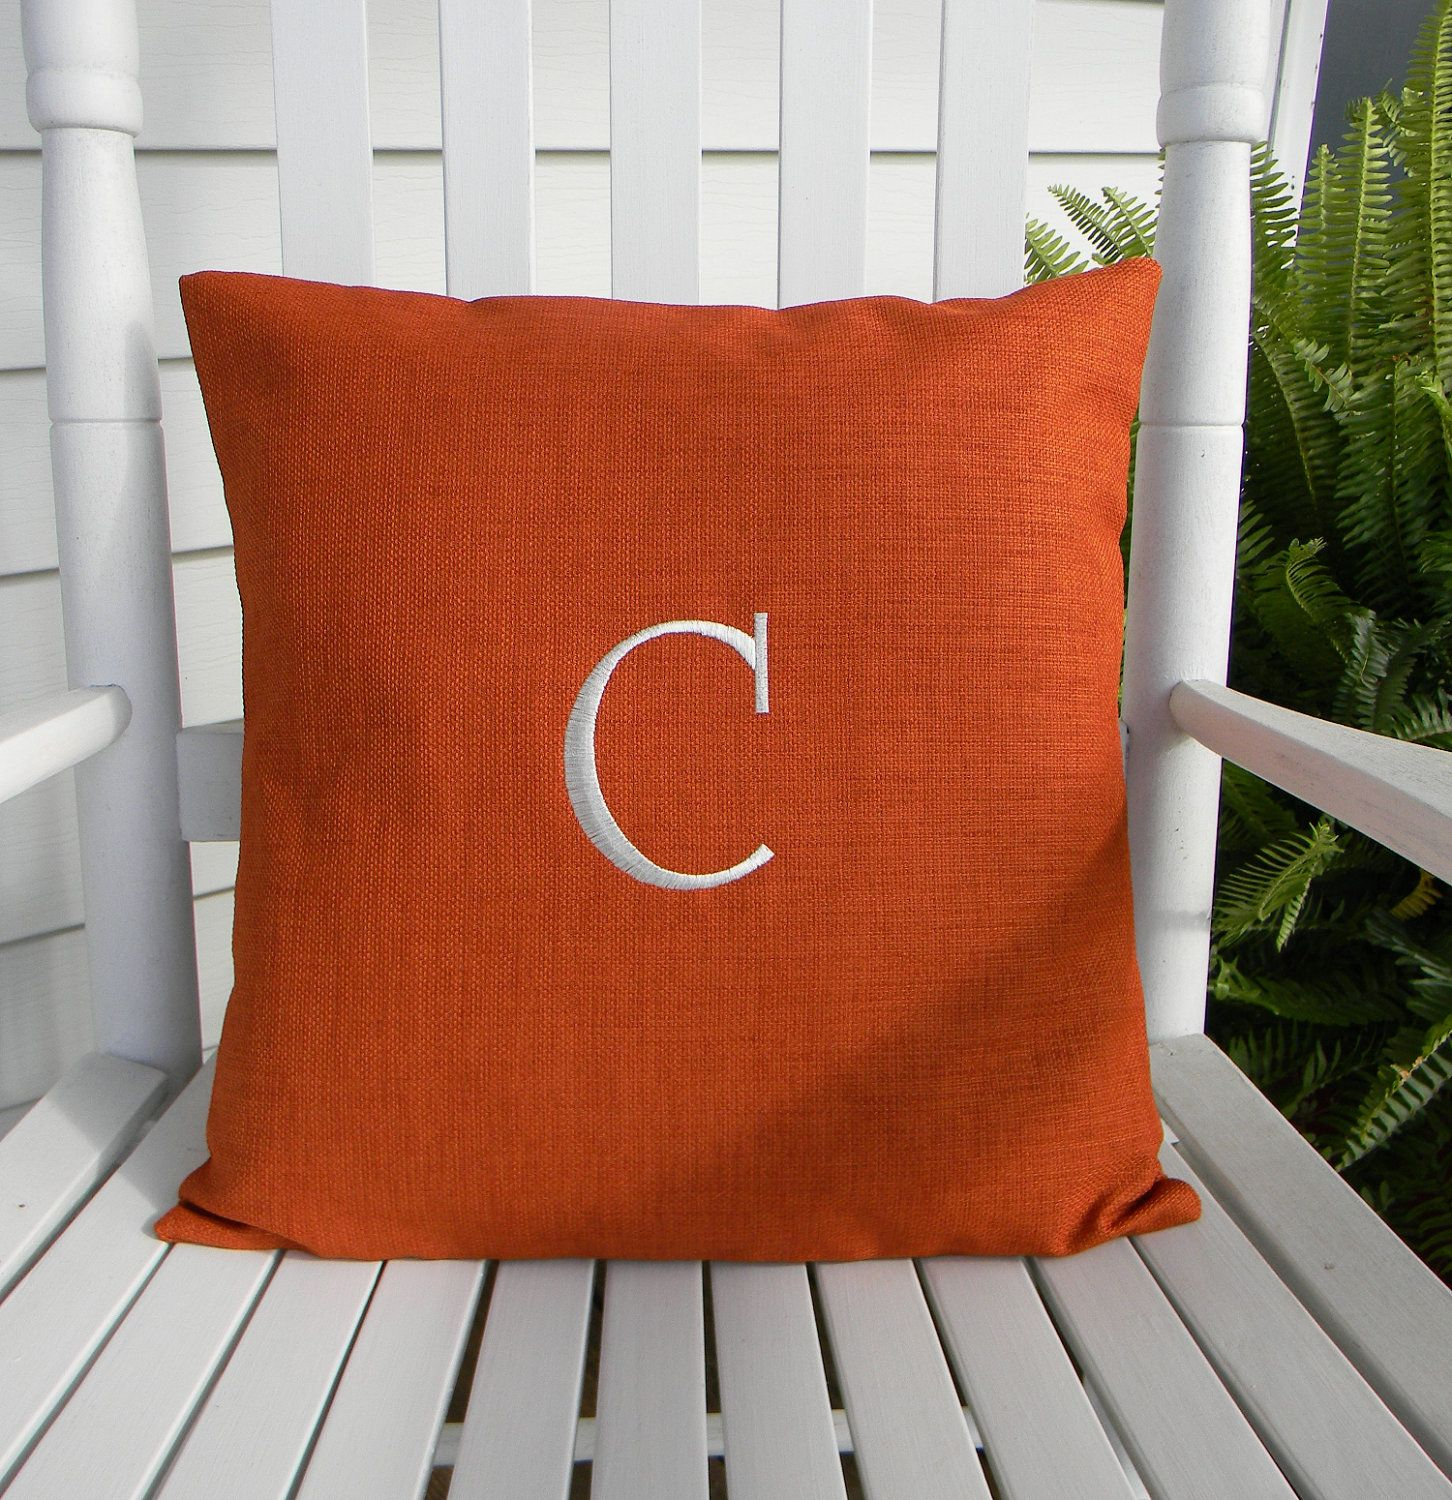 Monogrammed Outdoor Pillow Cover In Tangerine 16x16. $23.95, Via Etsy. Shop  U0027DesignsByThem